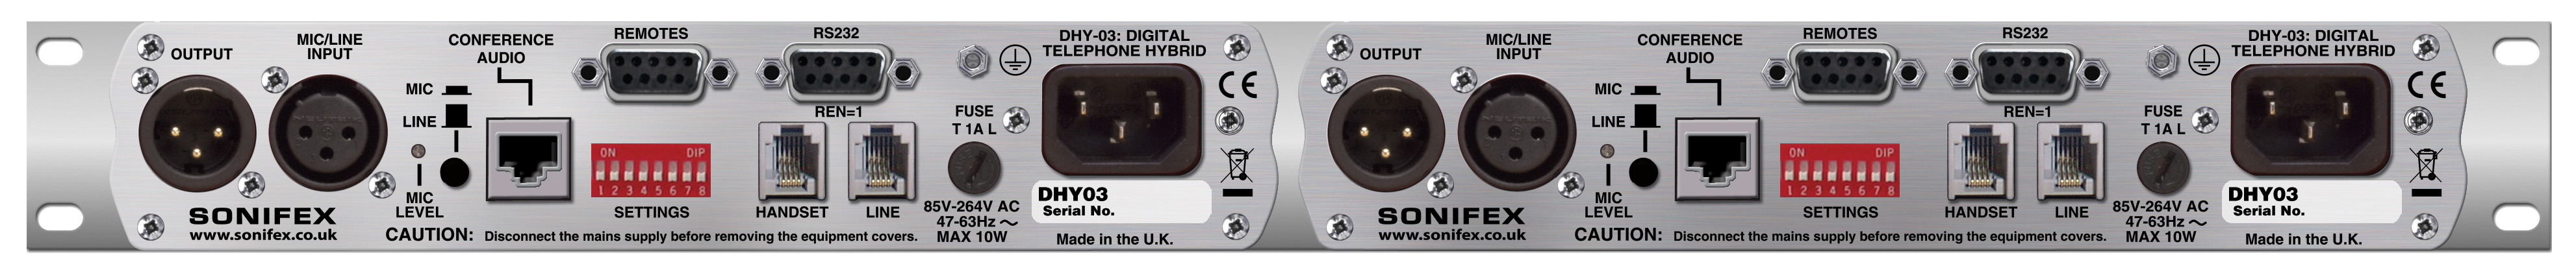 Sonifex Dhy 03s Digital Telephone Hybrid Circuit High Resolution Image Of Rear View